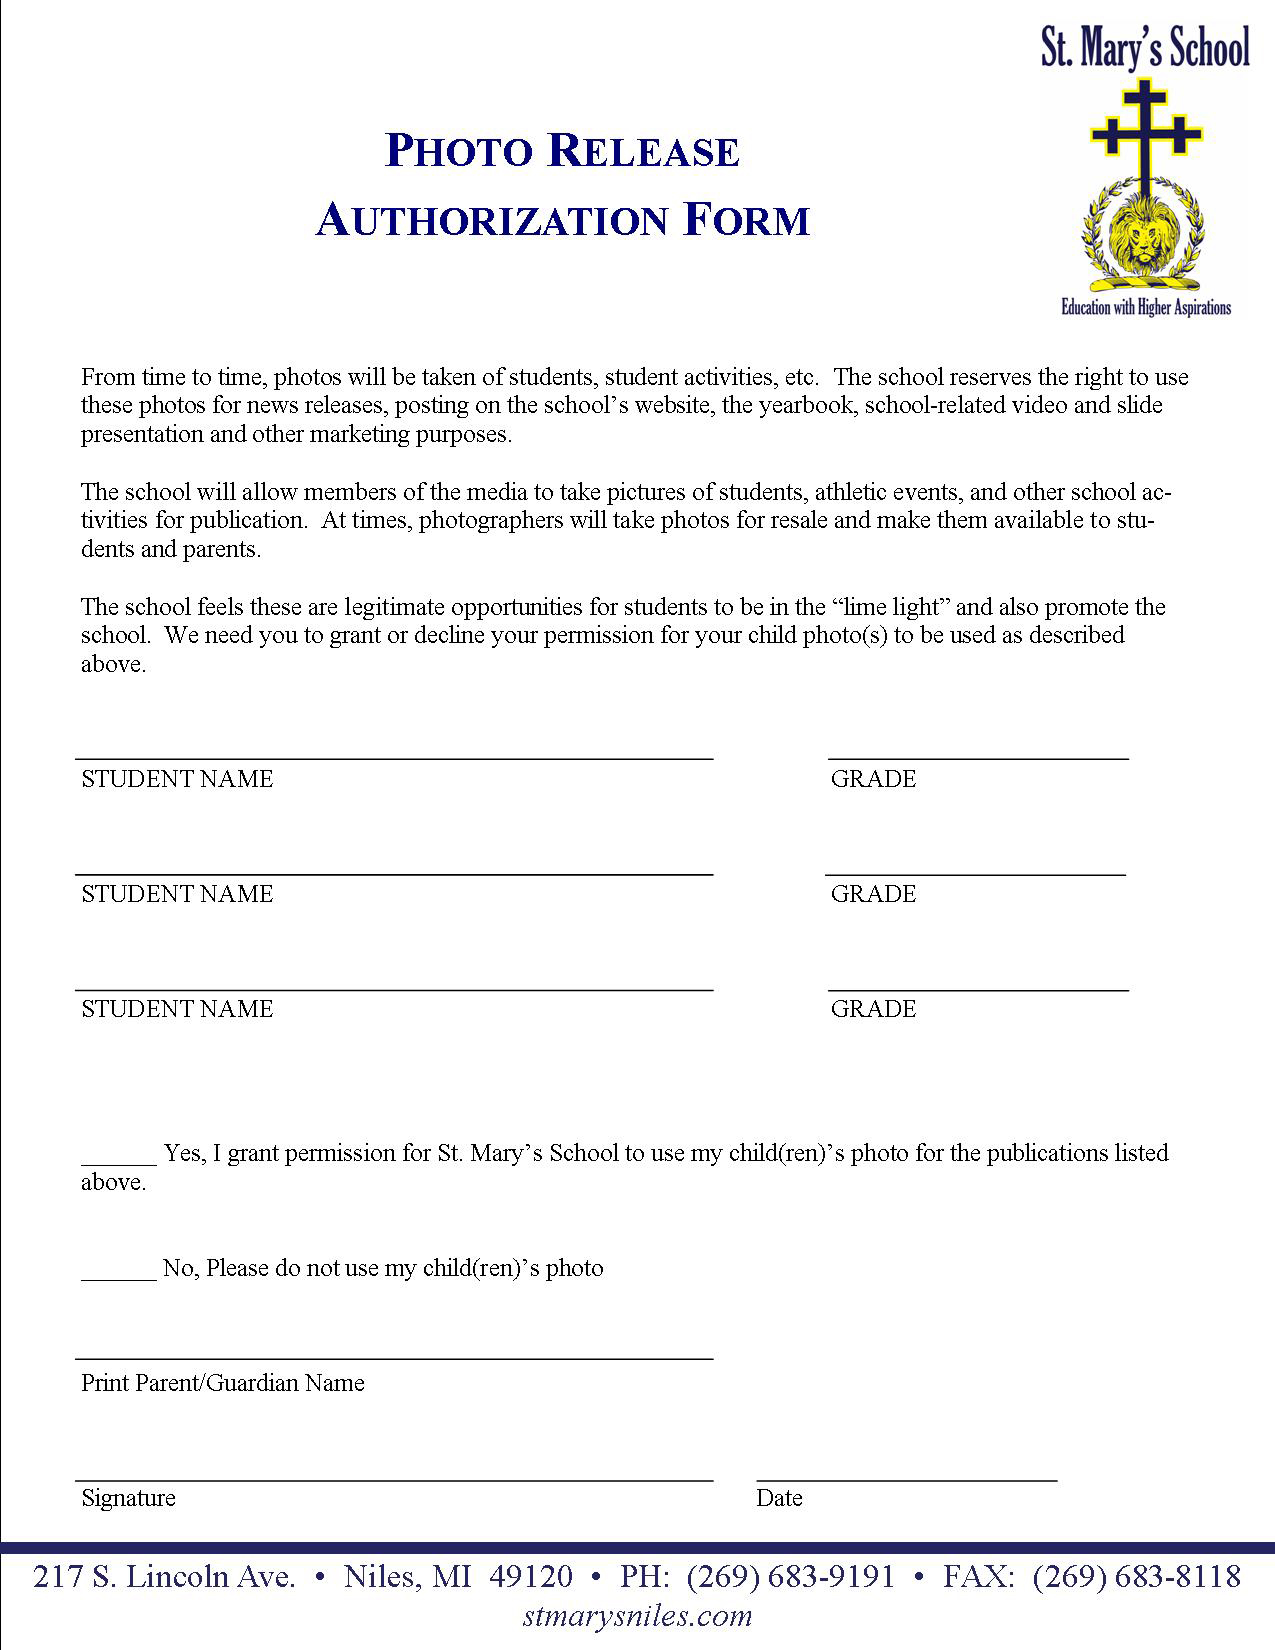 Field Trip Permission Form Template from d2y1pz2y630308.cloudfront.net